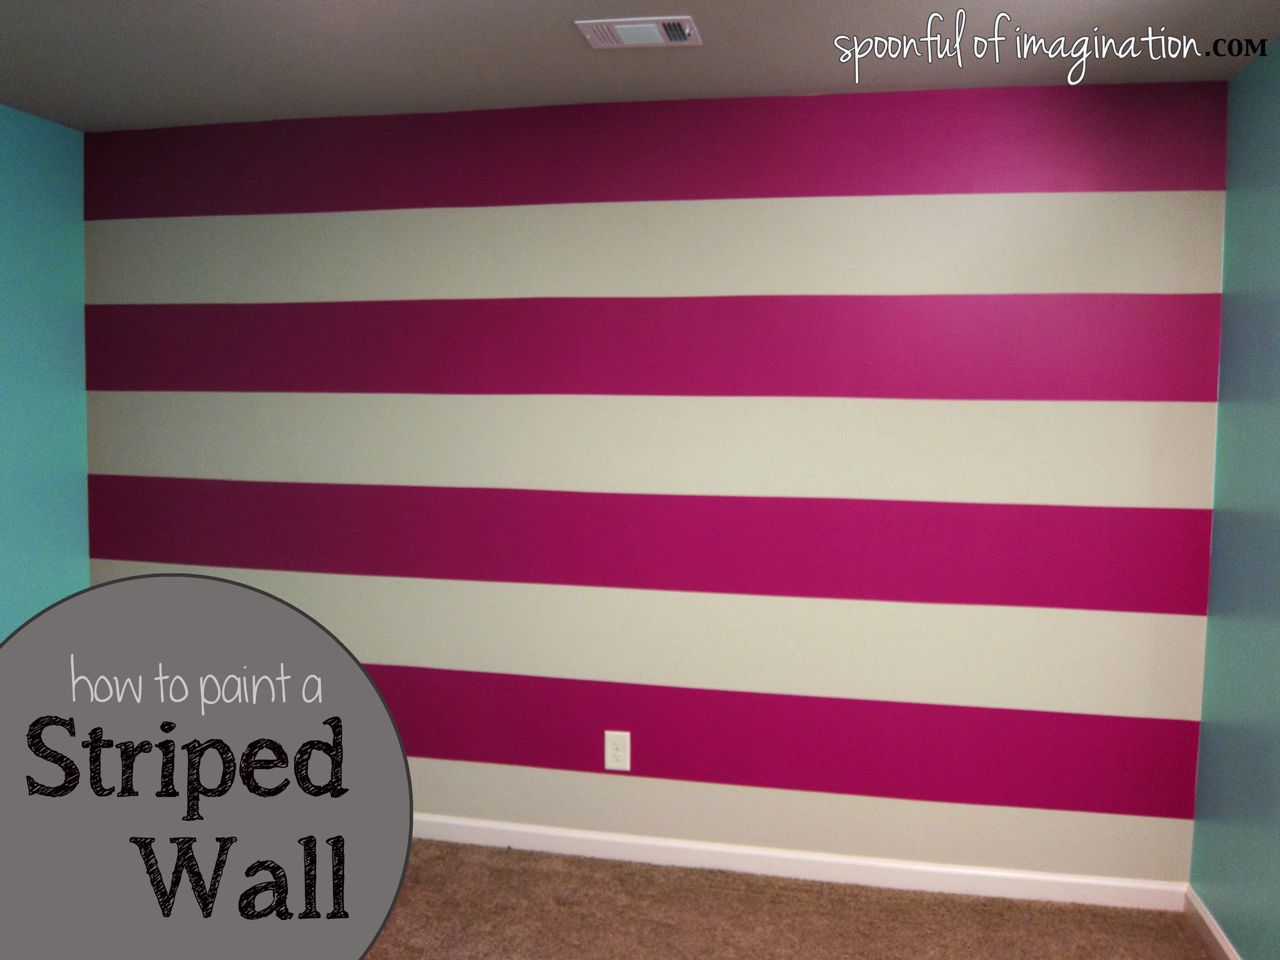 Diy wall stripes spoonful of imagination How to paint a bedroom wall